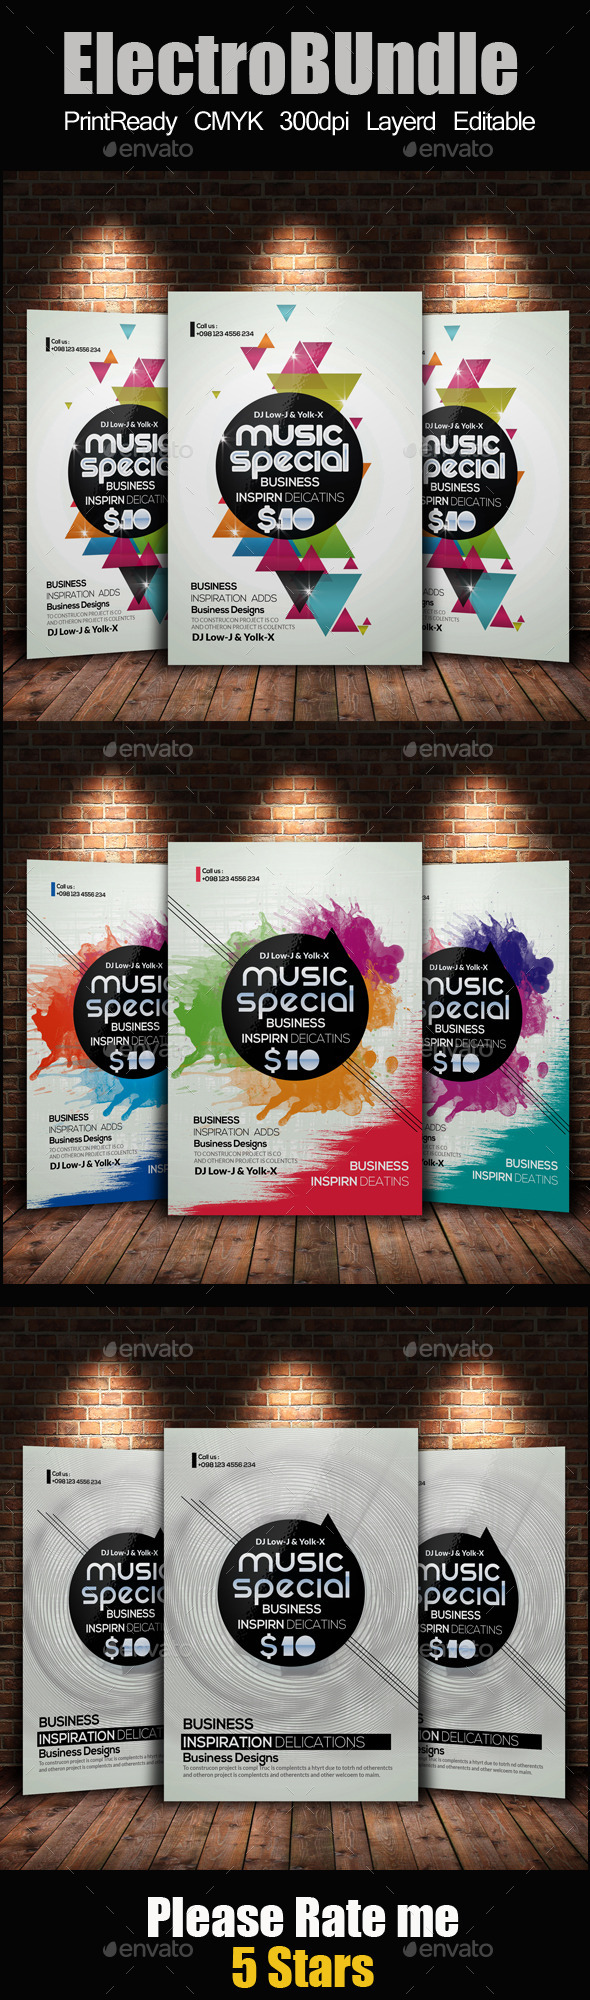 Electro & Futuristic Flyer Template Bundle - Clubs & Parties Events